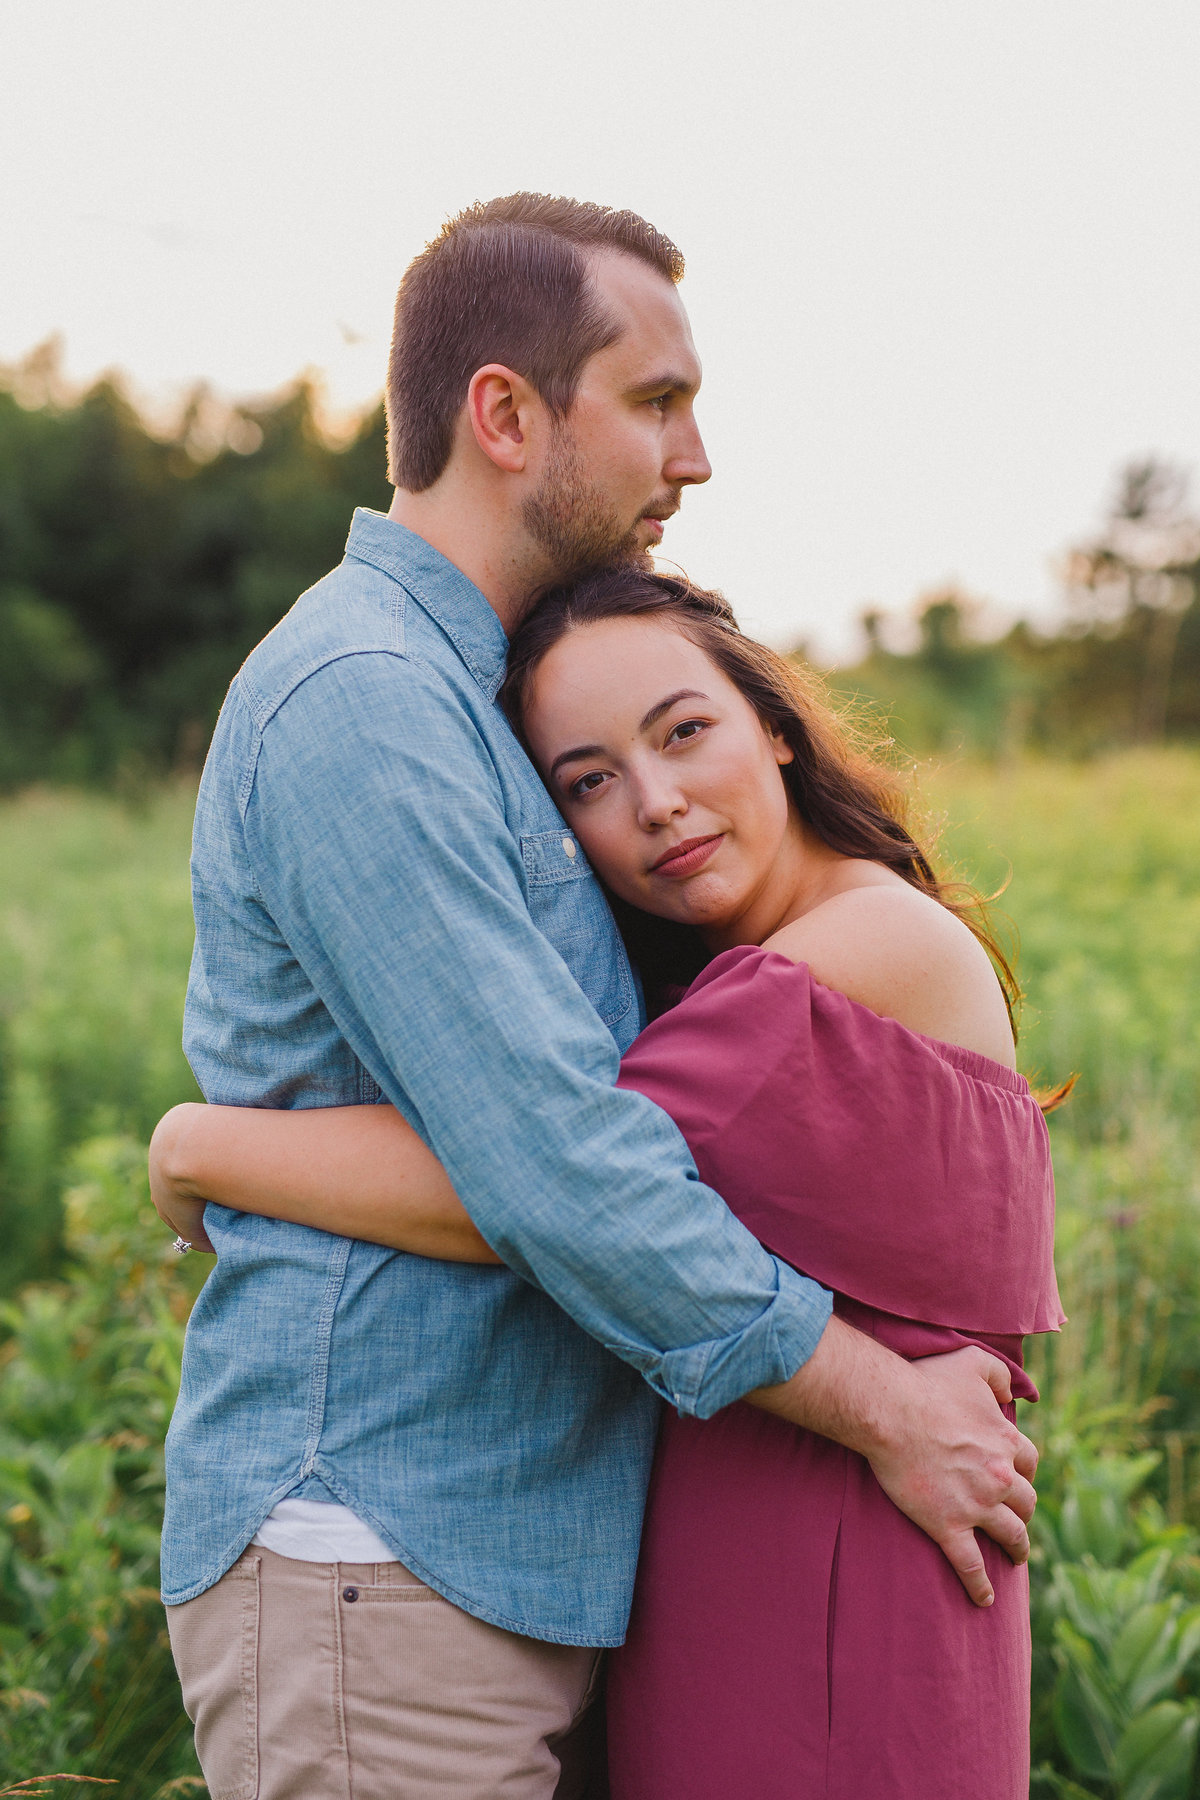 StephenAndMichelleEngaged_070617_WeeThreeSparrowsPhotography_143